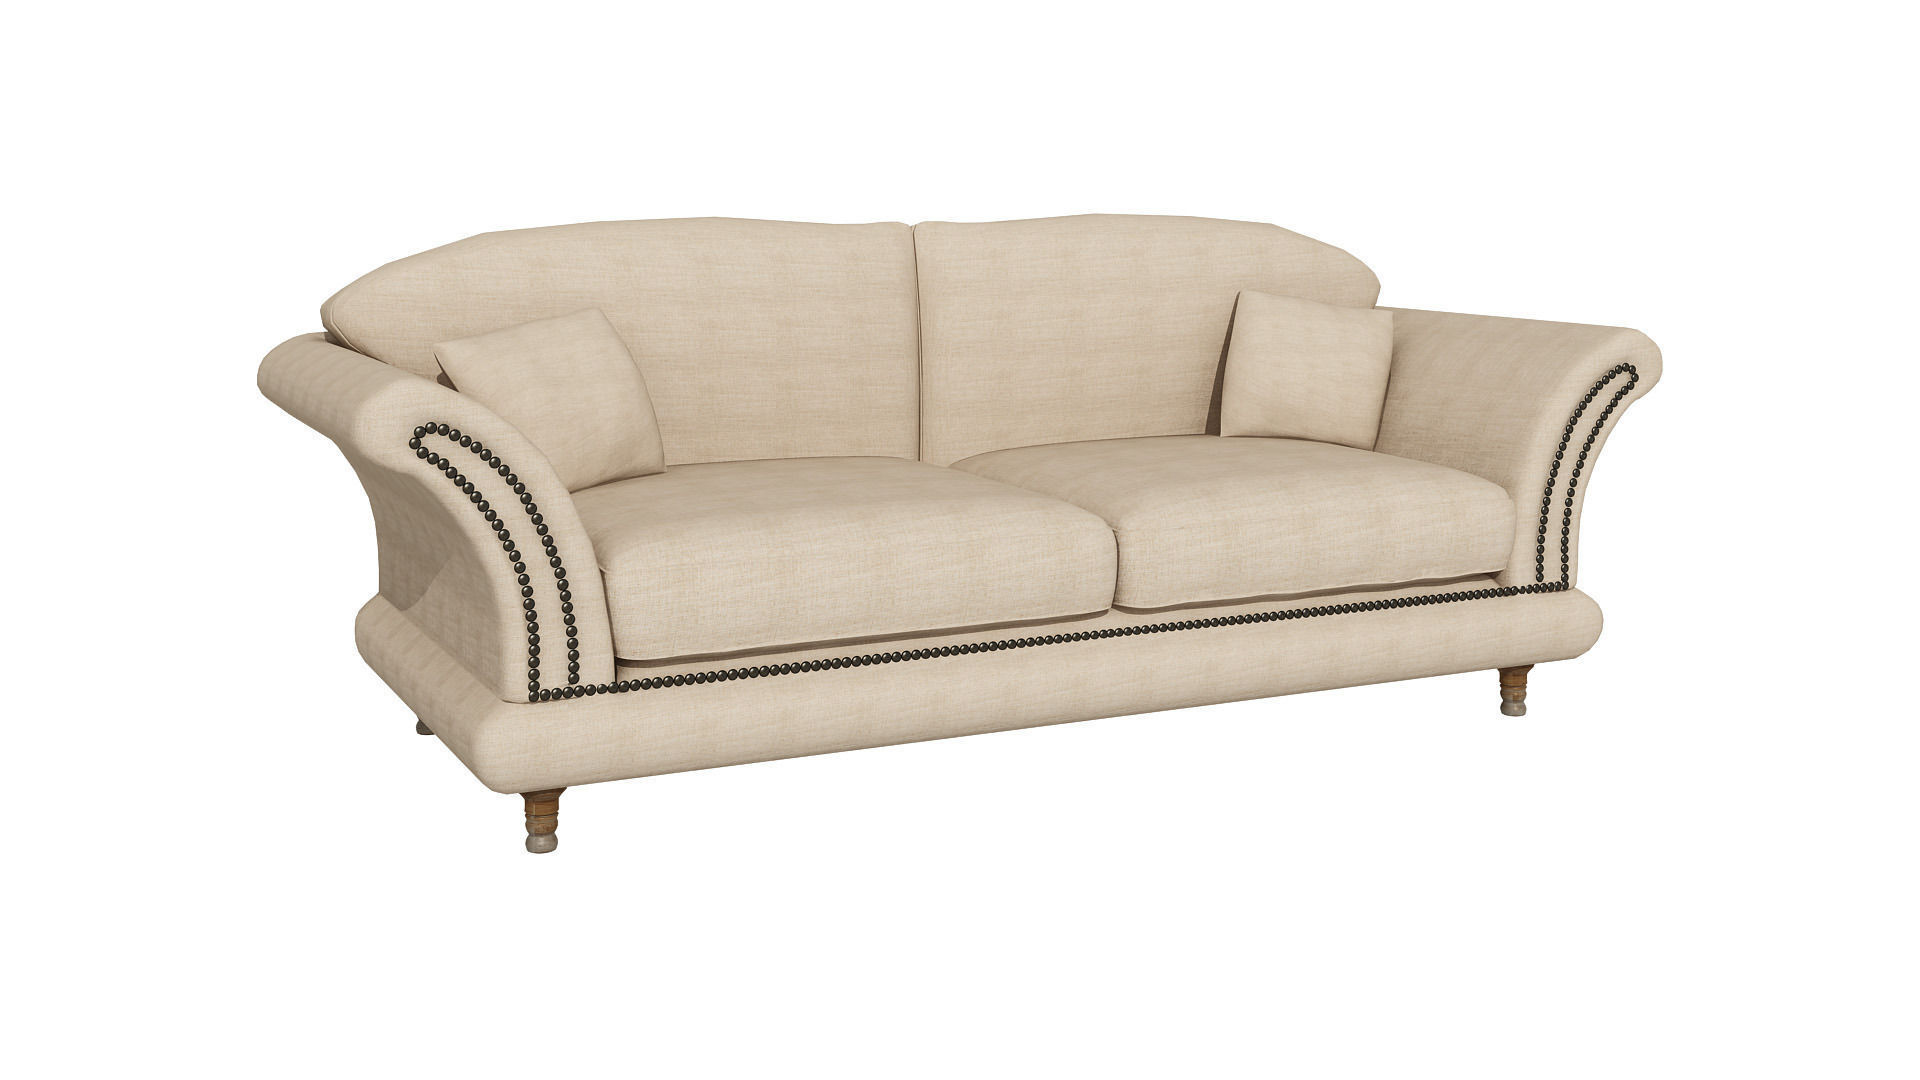 Modern Sofa With Pillows : Modern couch with pillows 236 3D Model .max - CGTrader.com